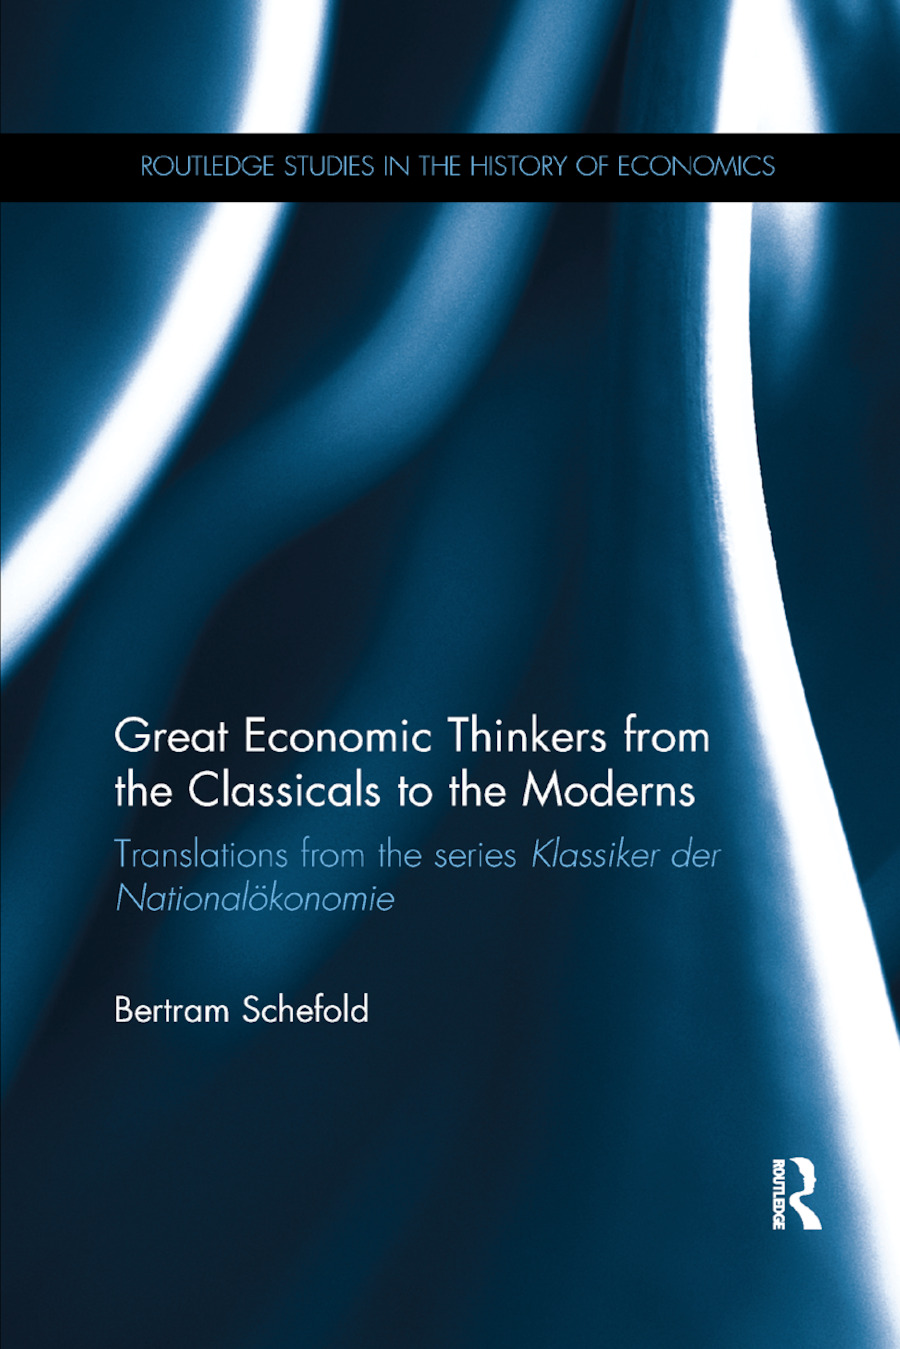 Great Economic Thinkers from the Classicals to the Moderns: Translations from the series Klassiker der National�konomie book cover